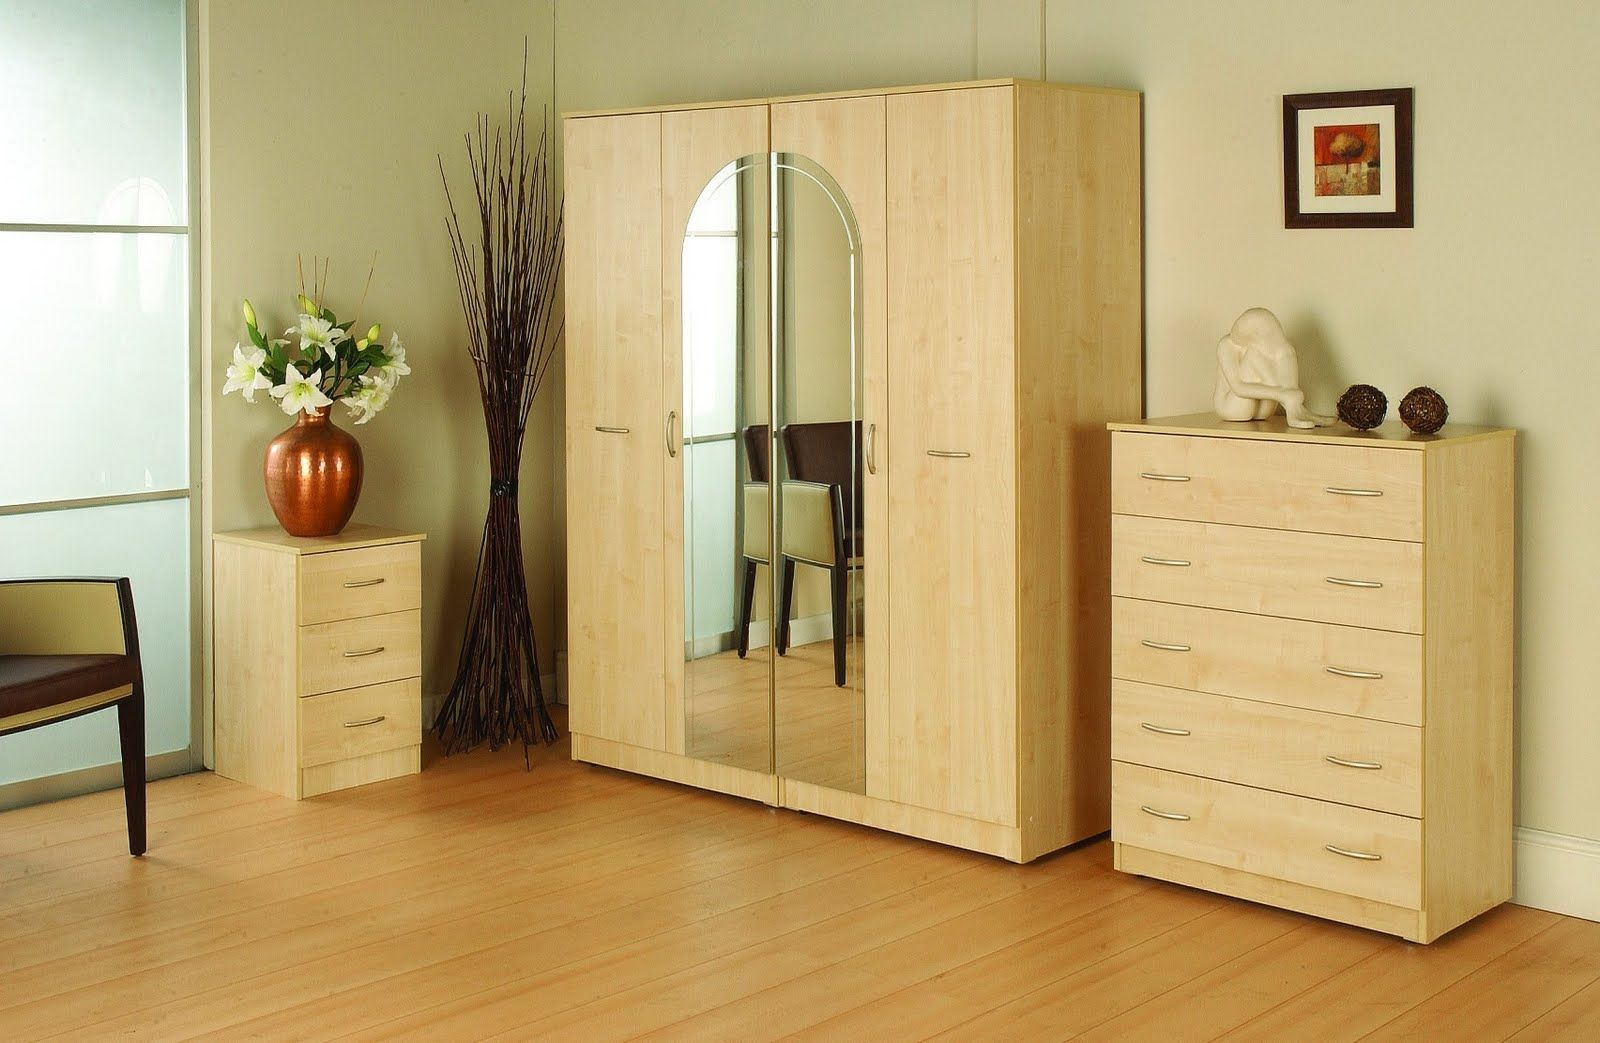 Cute Cream Color Wooden Free Standing Closet With Mirrored Door